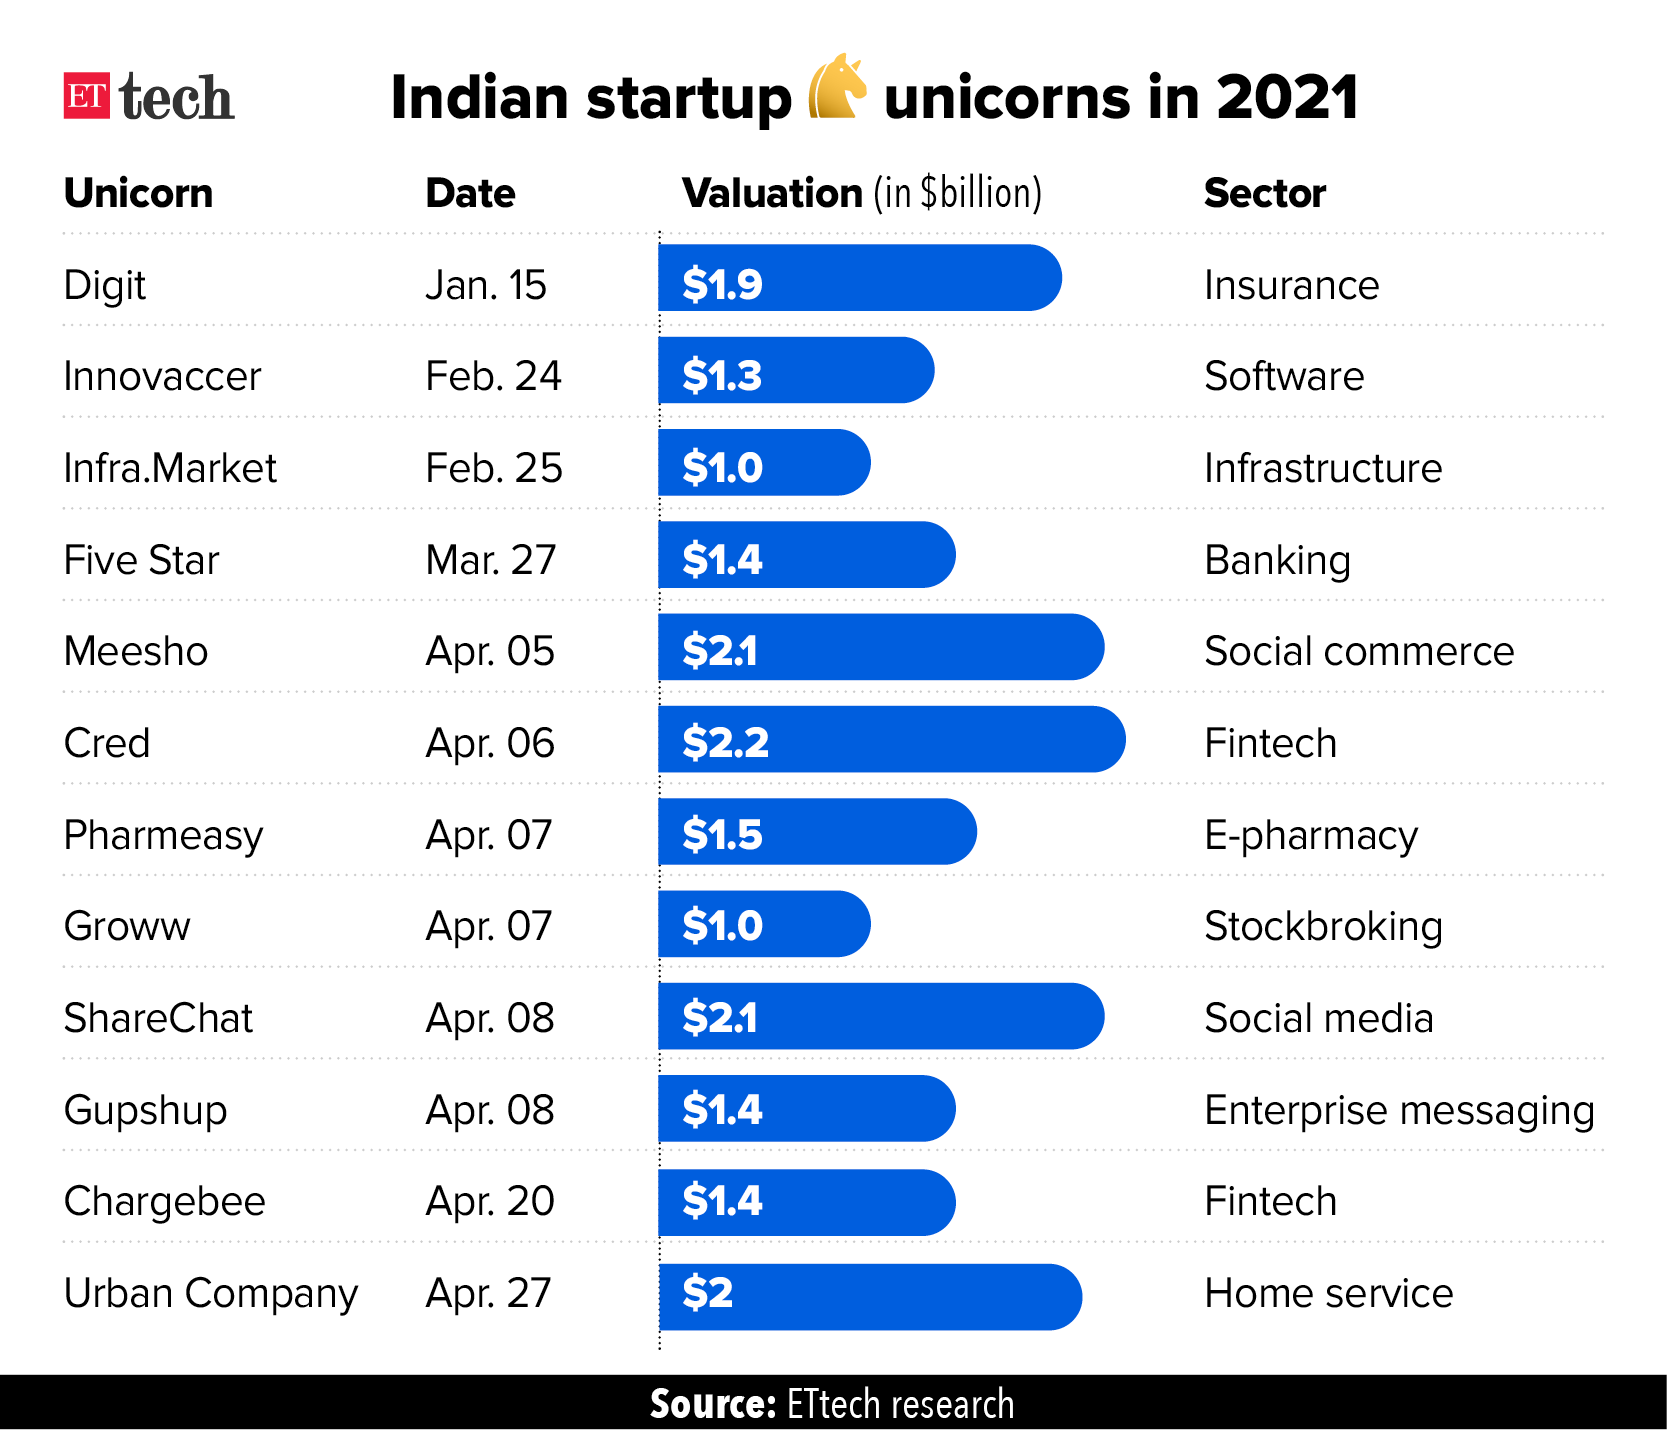 Indian Startup Unicorns in 2021